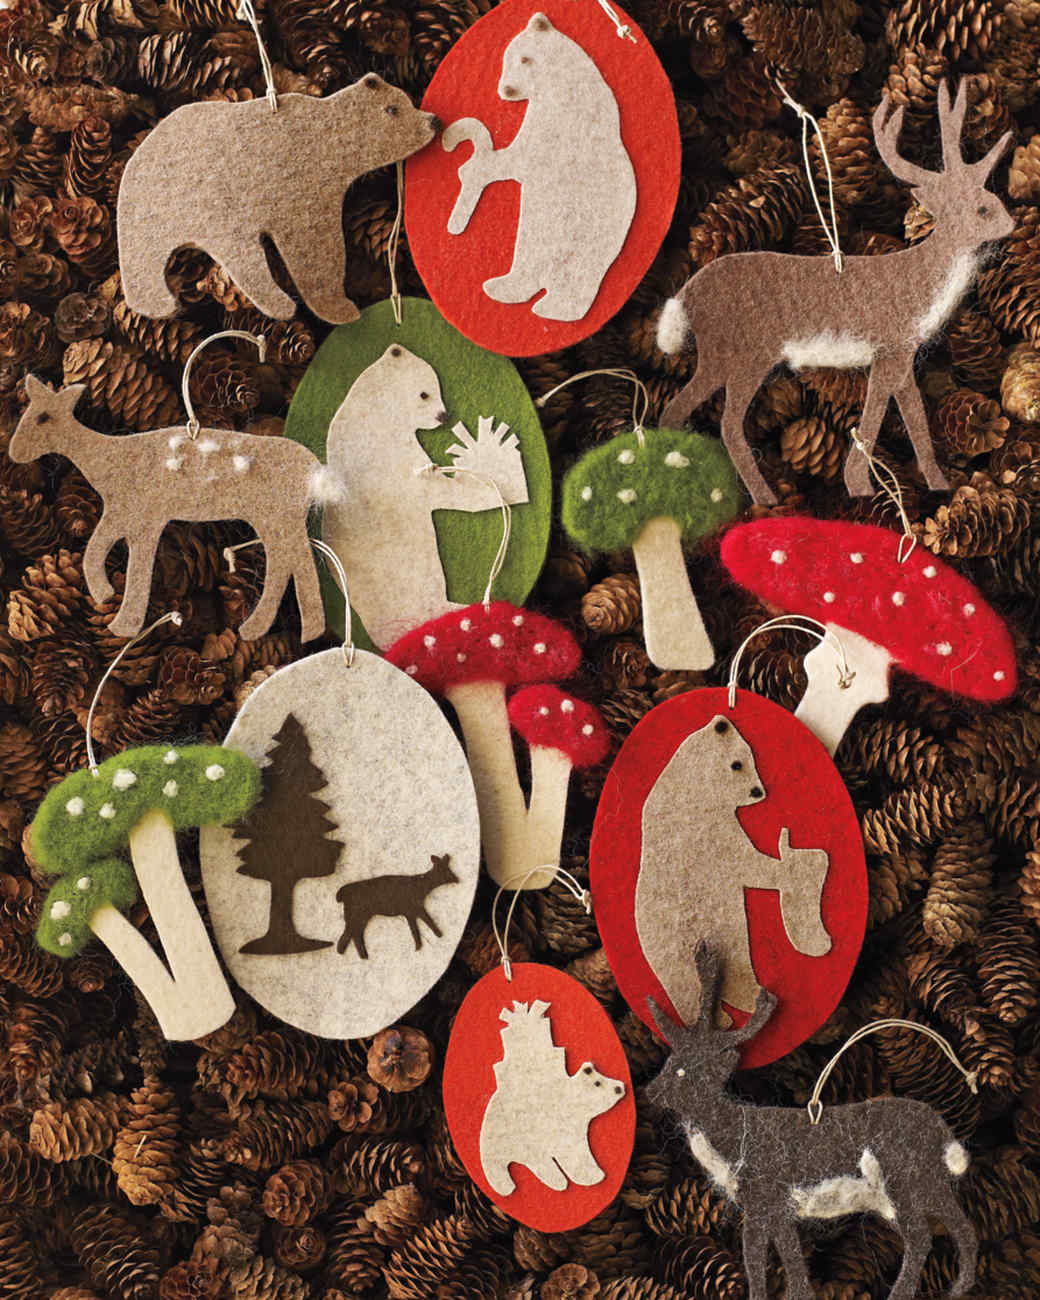 20 of Our Most Memorable DIY Christmas Ornament Projects | Martha Stewart